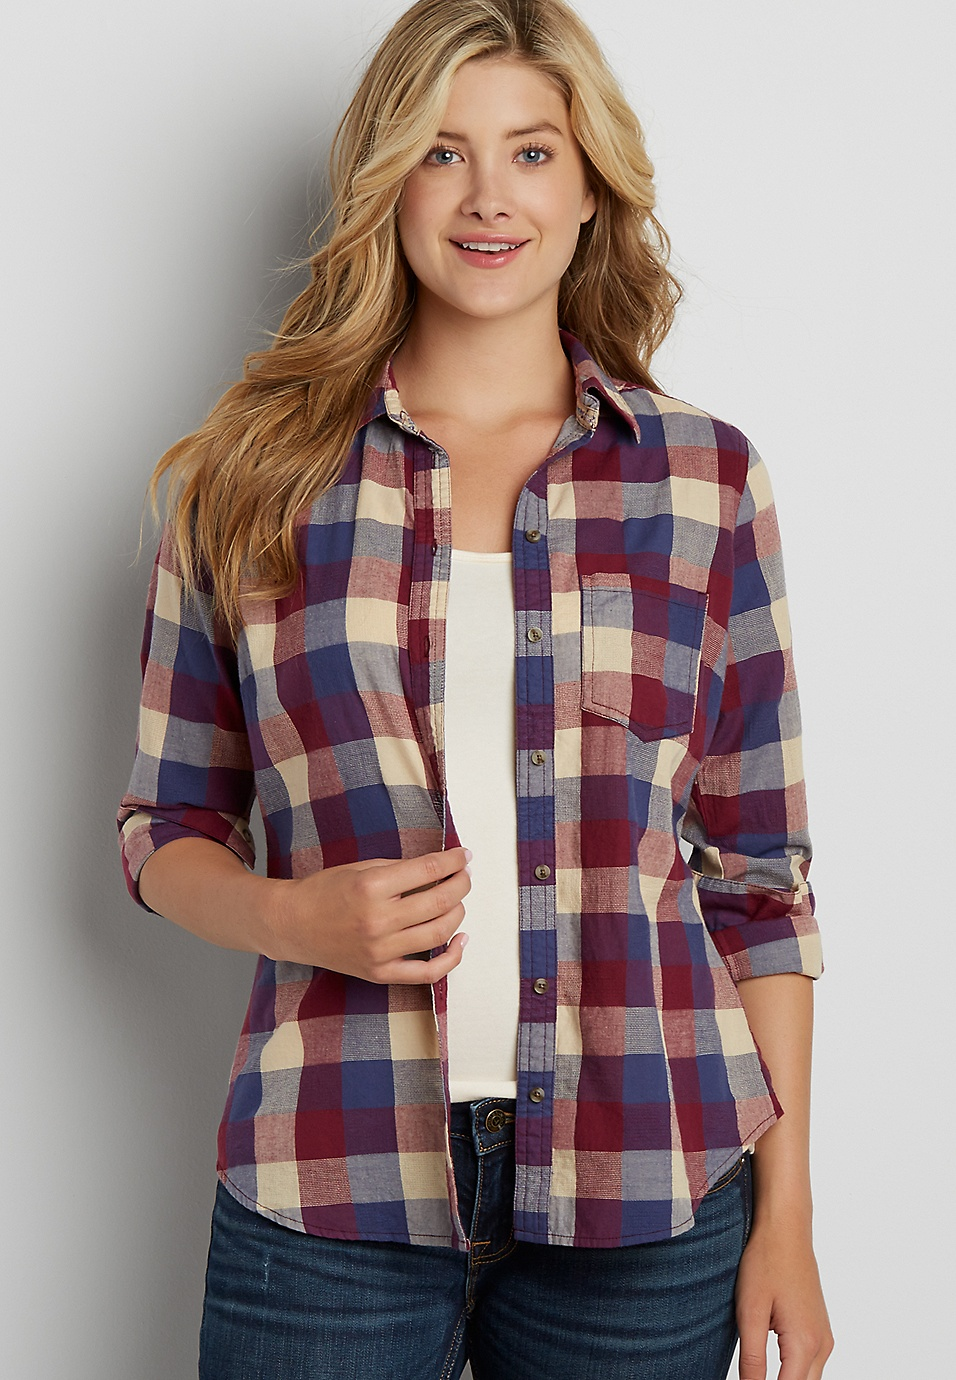 Discount Clearance Plus Size - Plaid Button Down Shirt Maurices Buy Cheap Fast Delivery Footlocker Pictures Sale Online QsXG5Q